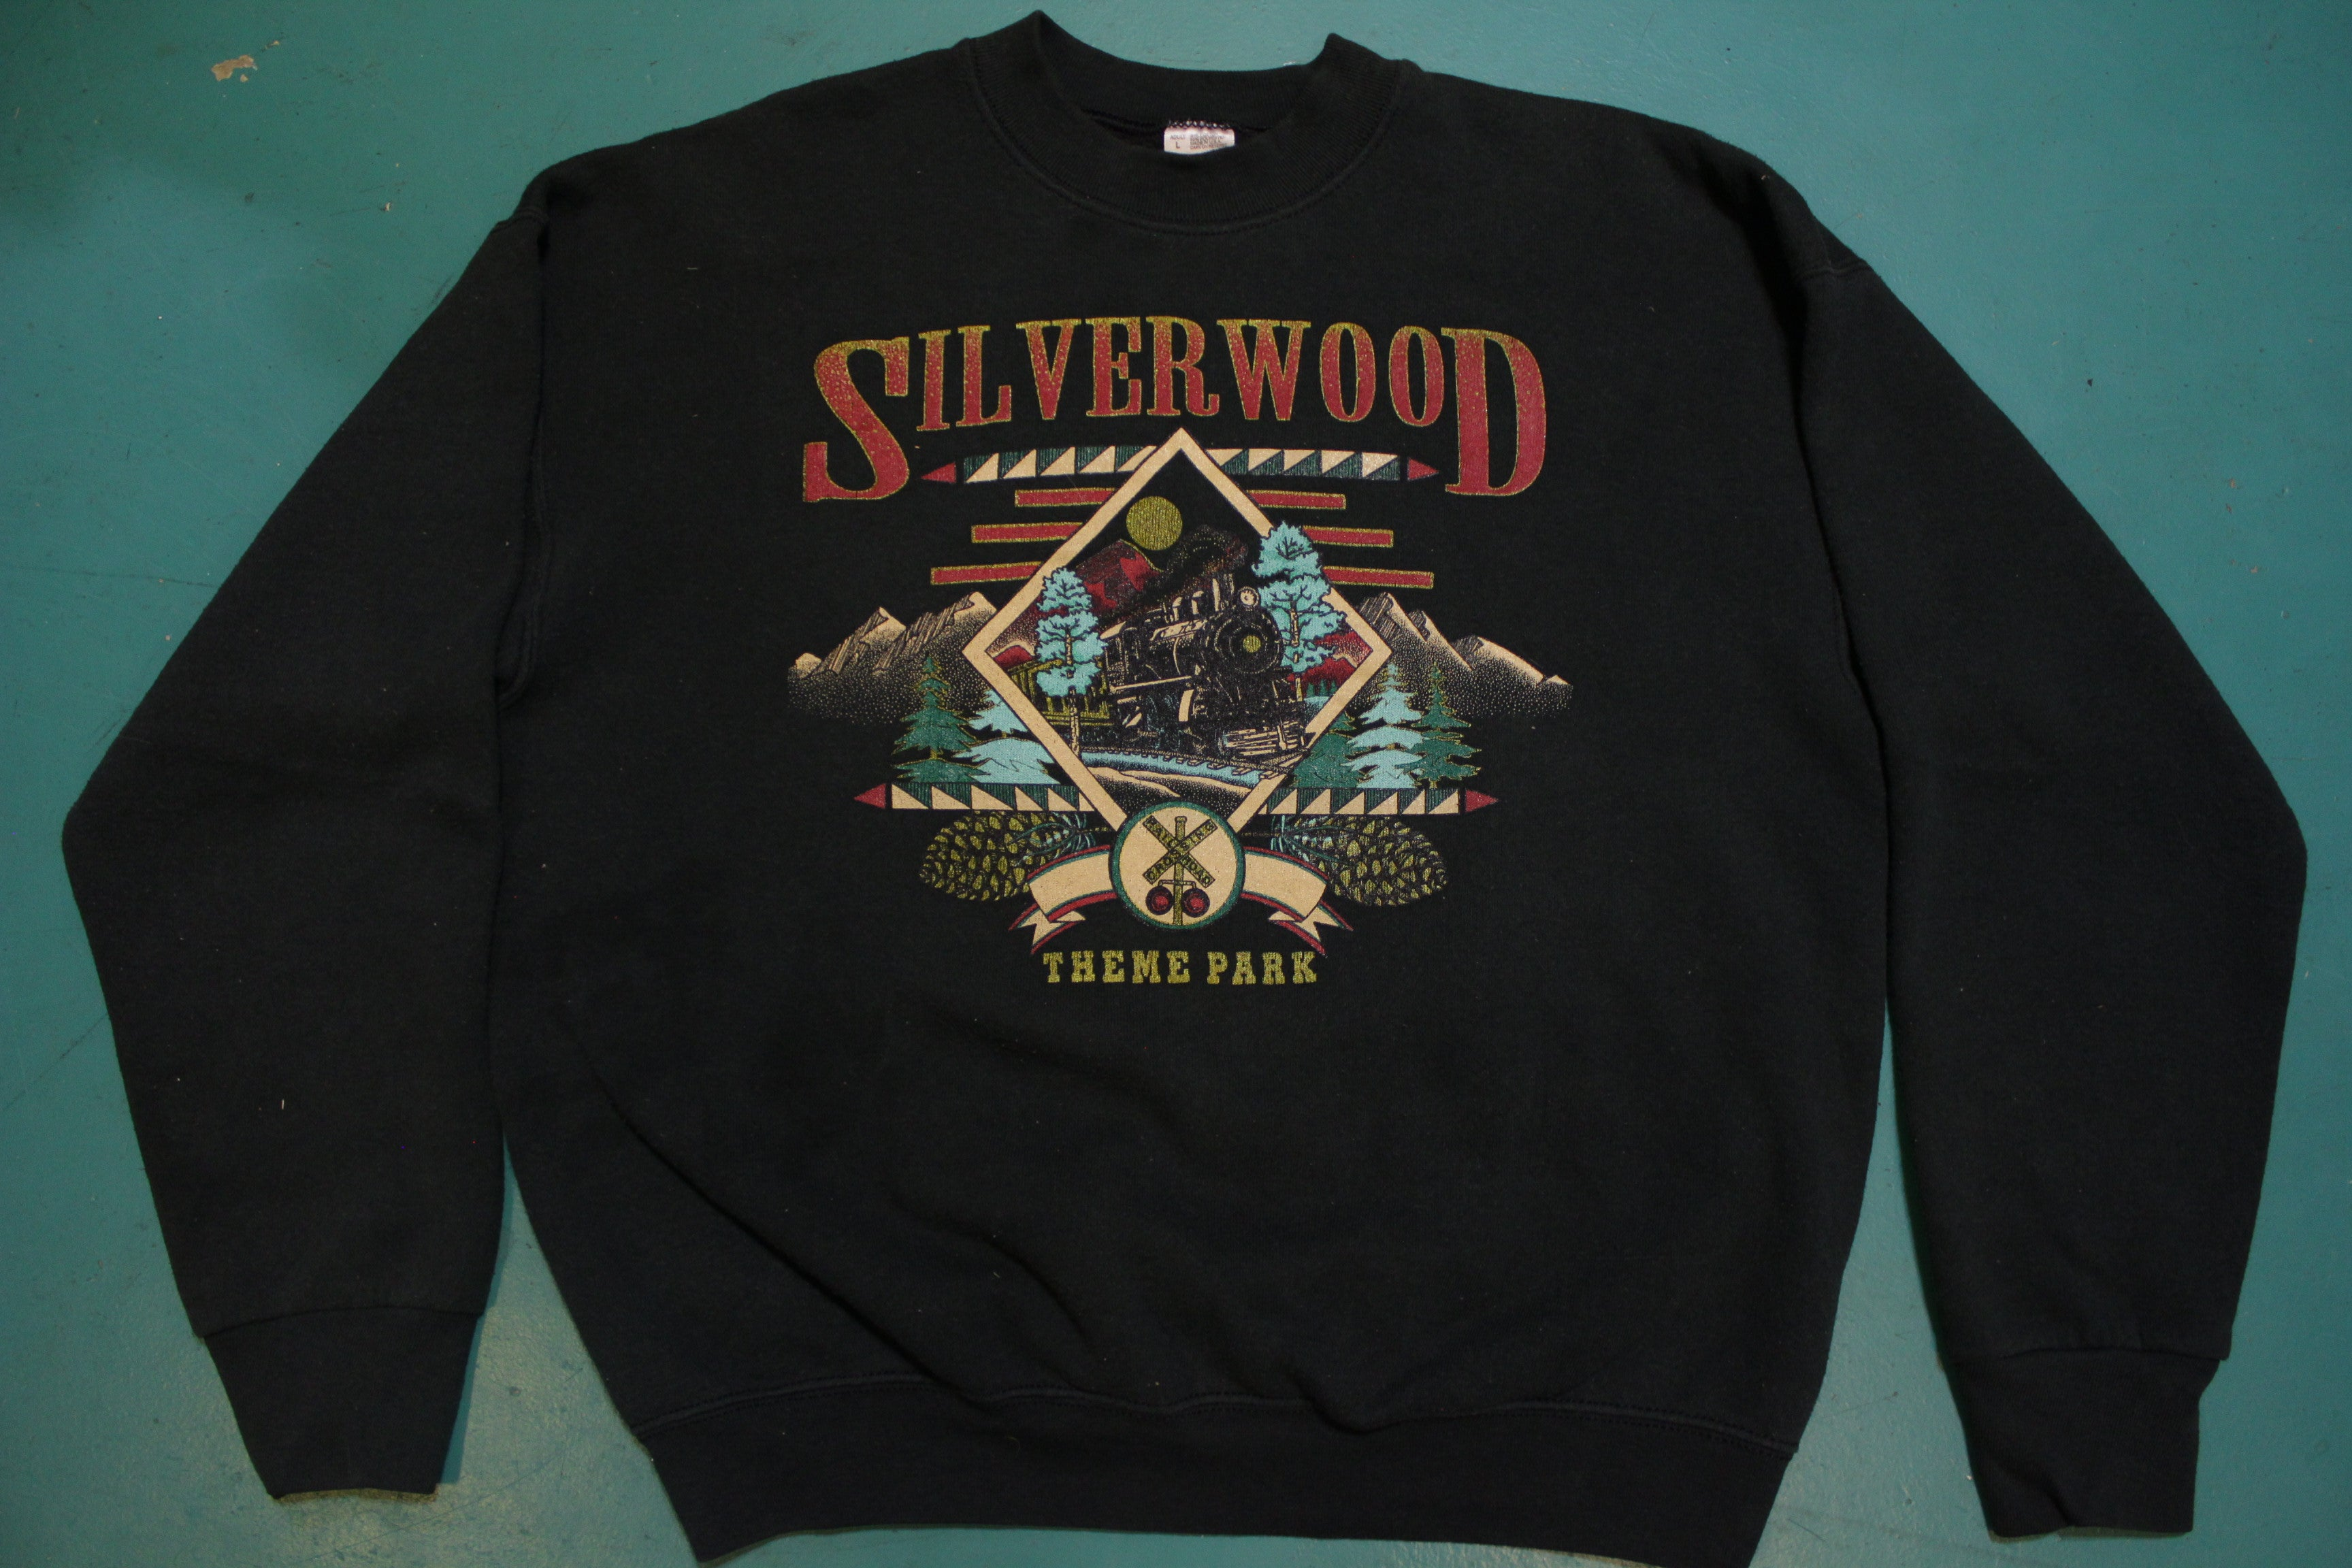 Silverwood Theme Park Locomotive Train 80s Fruit of the Loom Made in USA Fifty-Fifty Vintage Crew Neck Sweatshirt